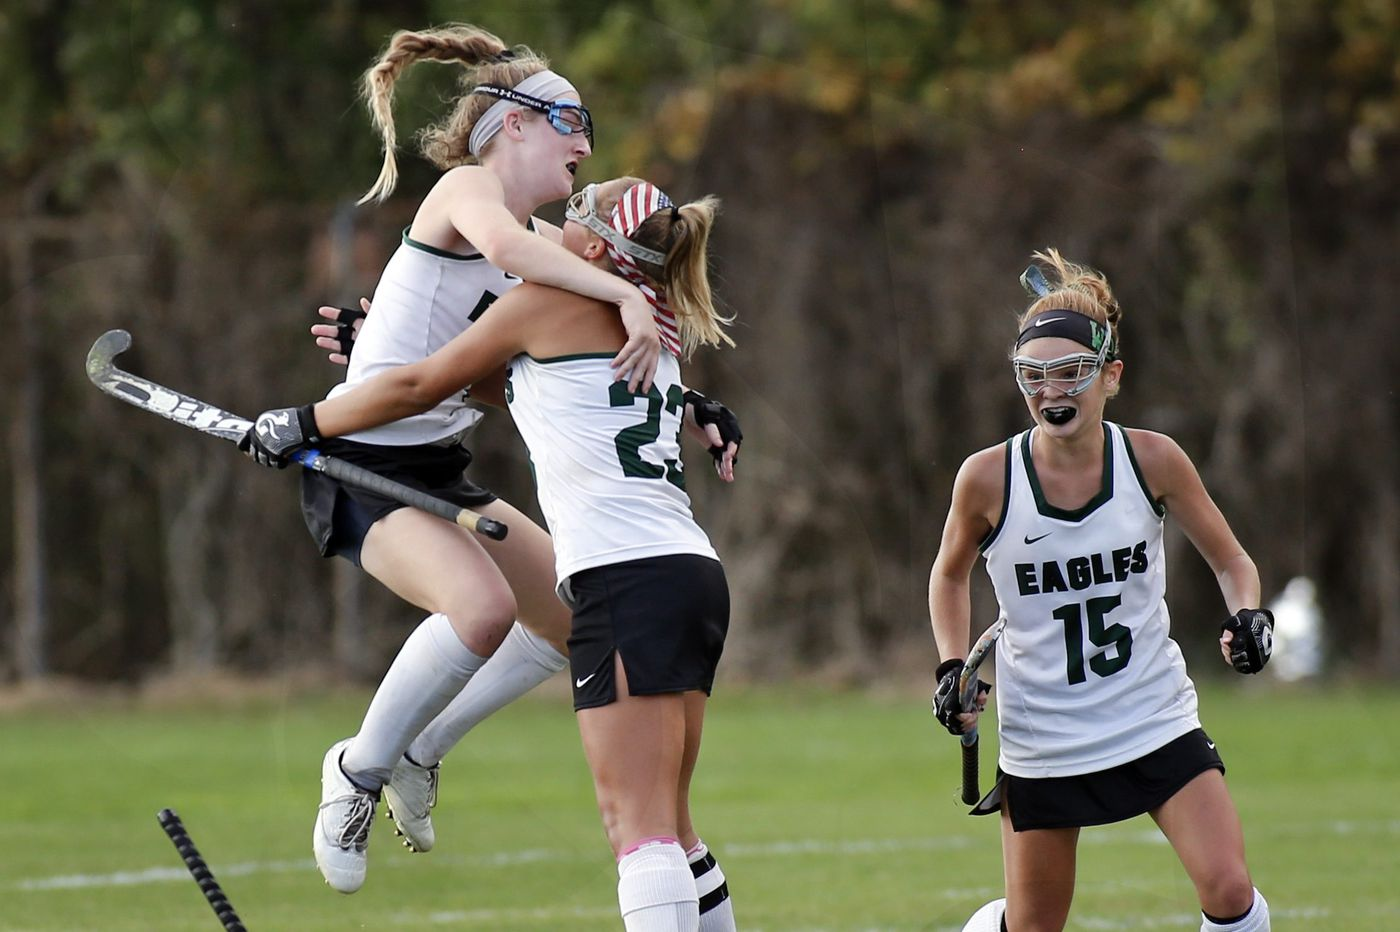 Tuesday's South Jersey roundup: Miranda Mason leads West Deptford field hockey past Overbrook